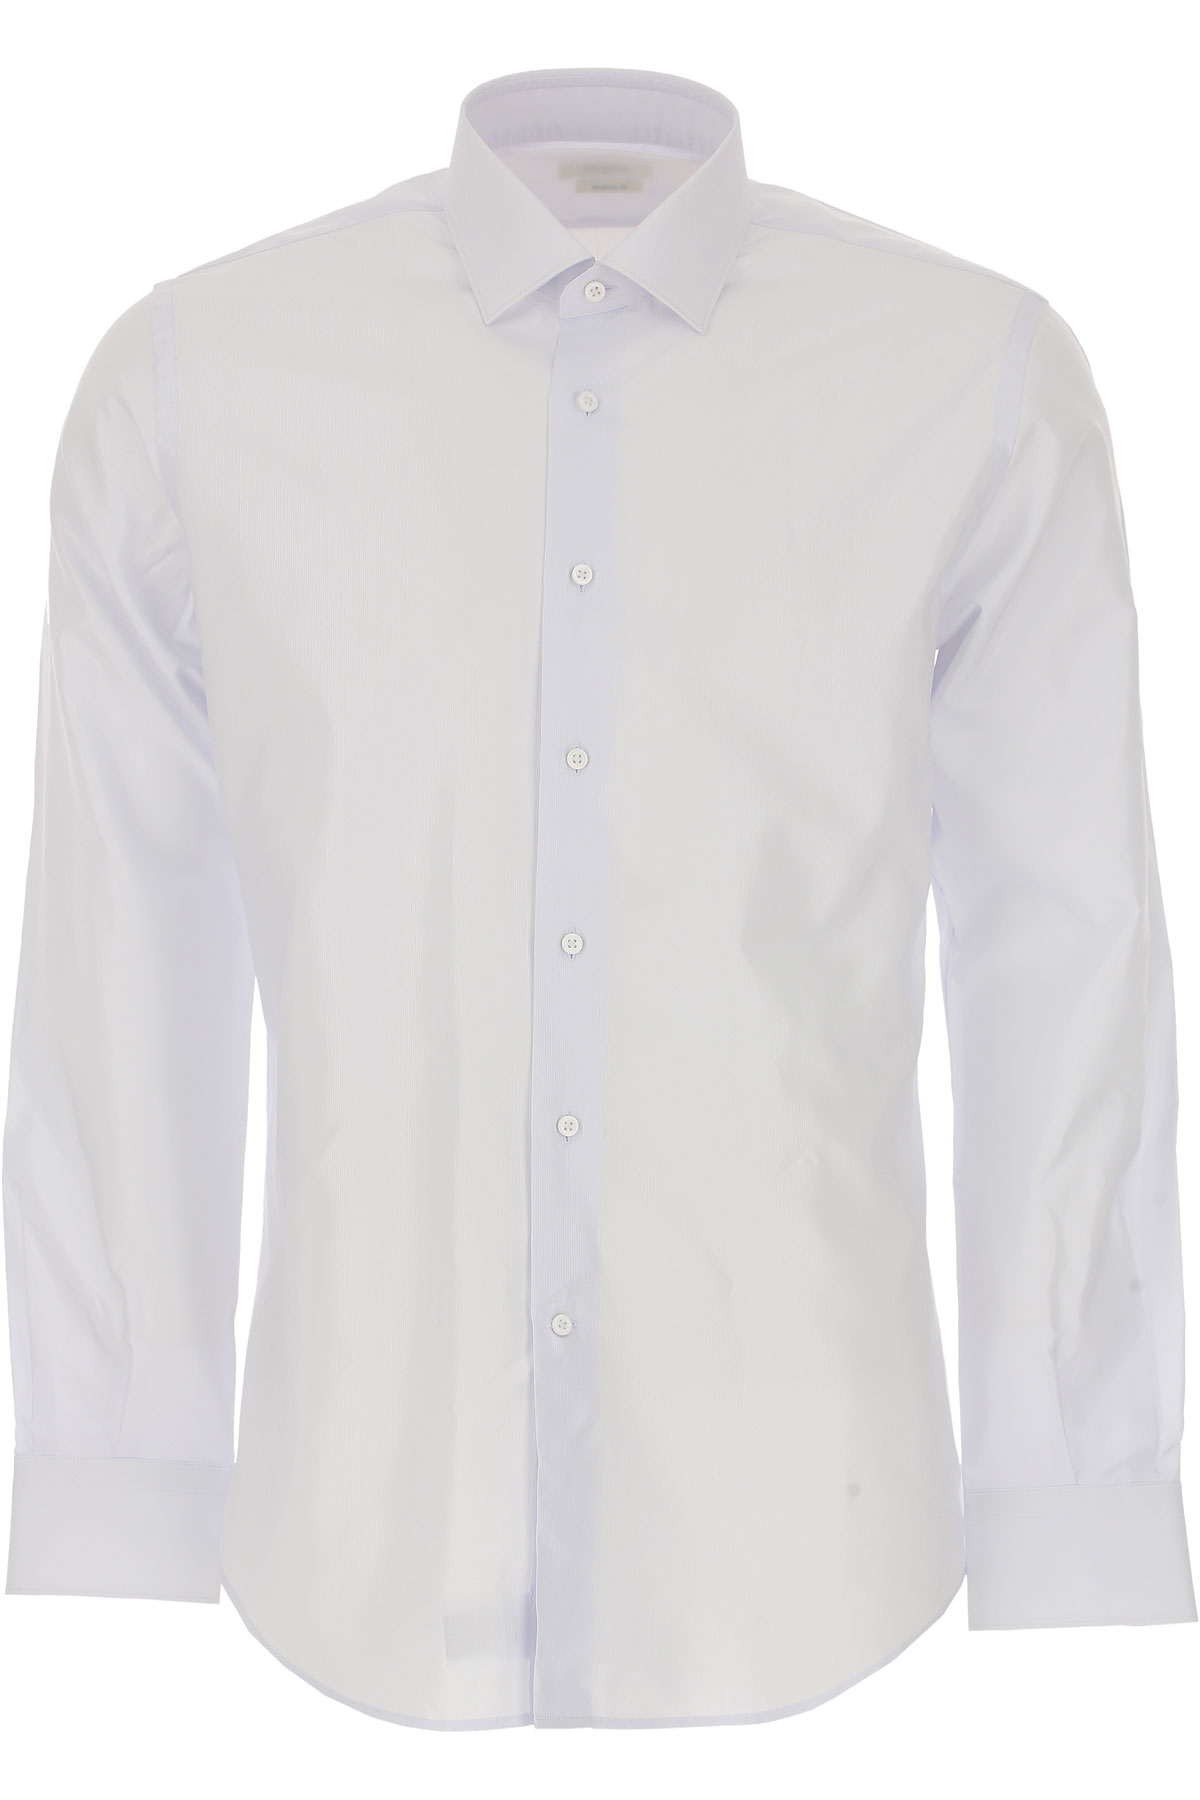 Image of Del Siena Shirt for Men, Azure, Cotton, 2017, 15.5 15.75 17 17.5